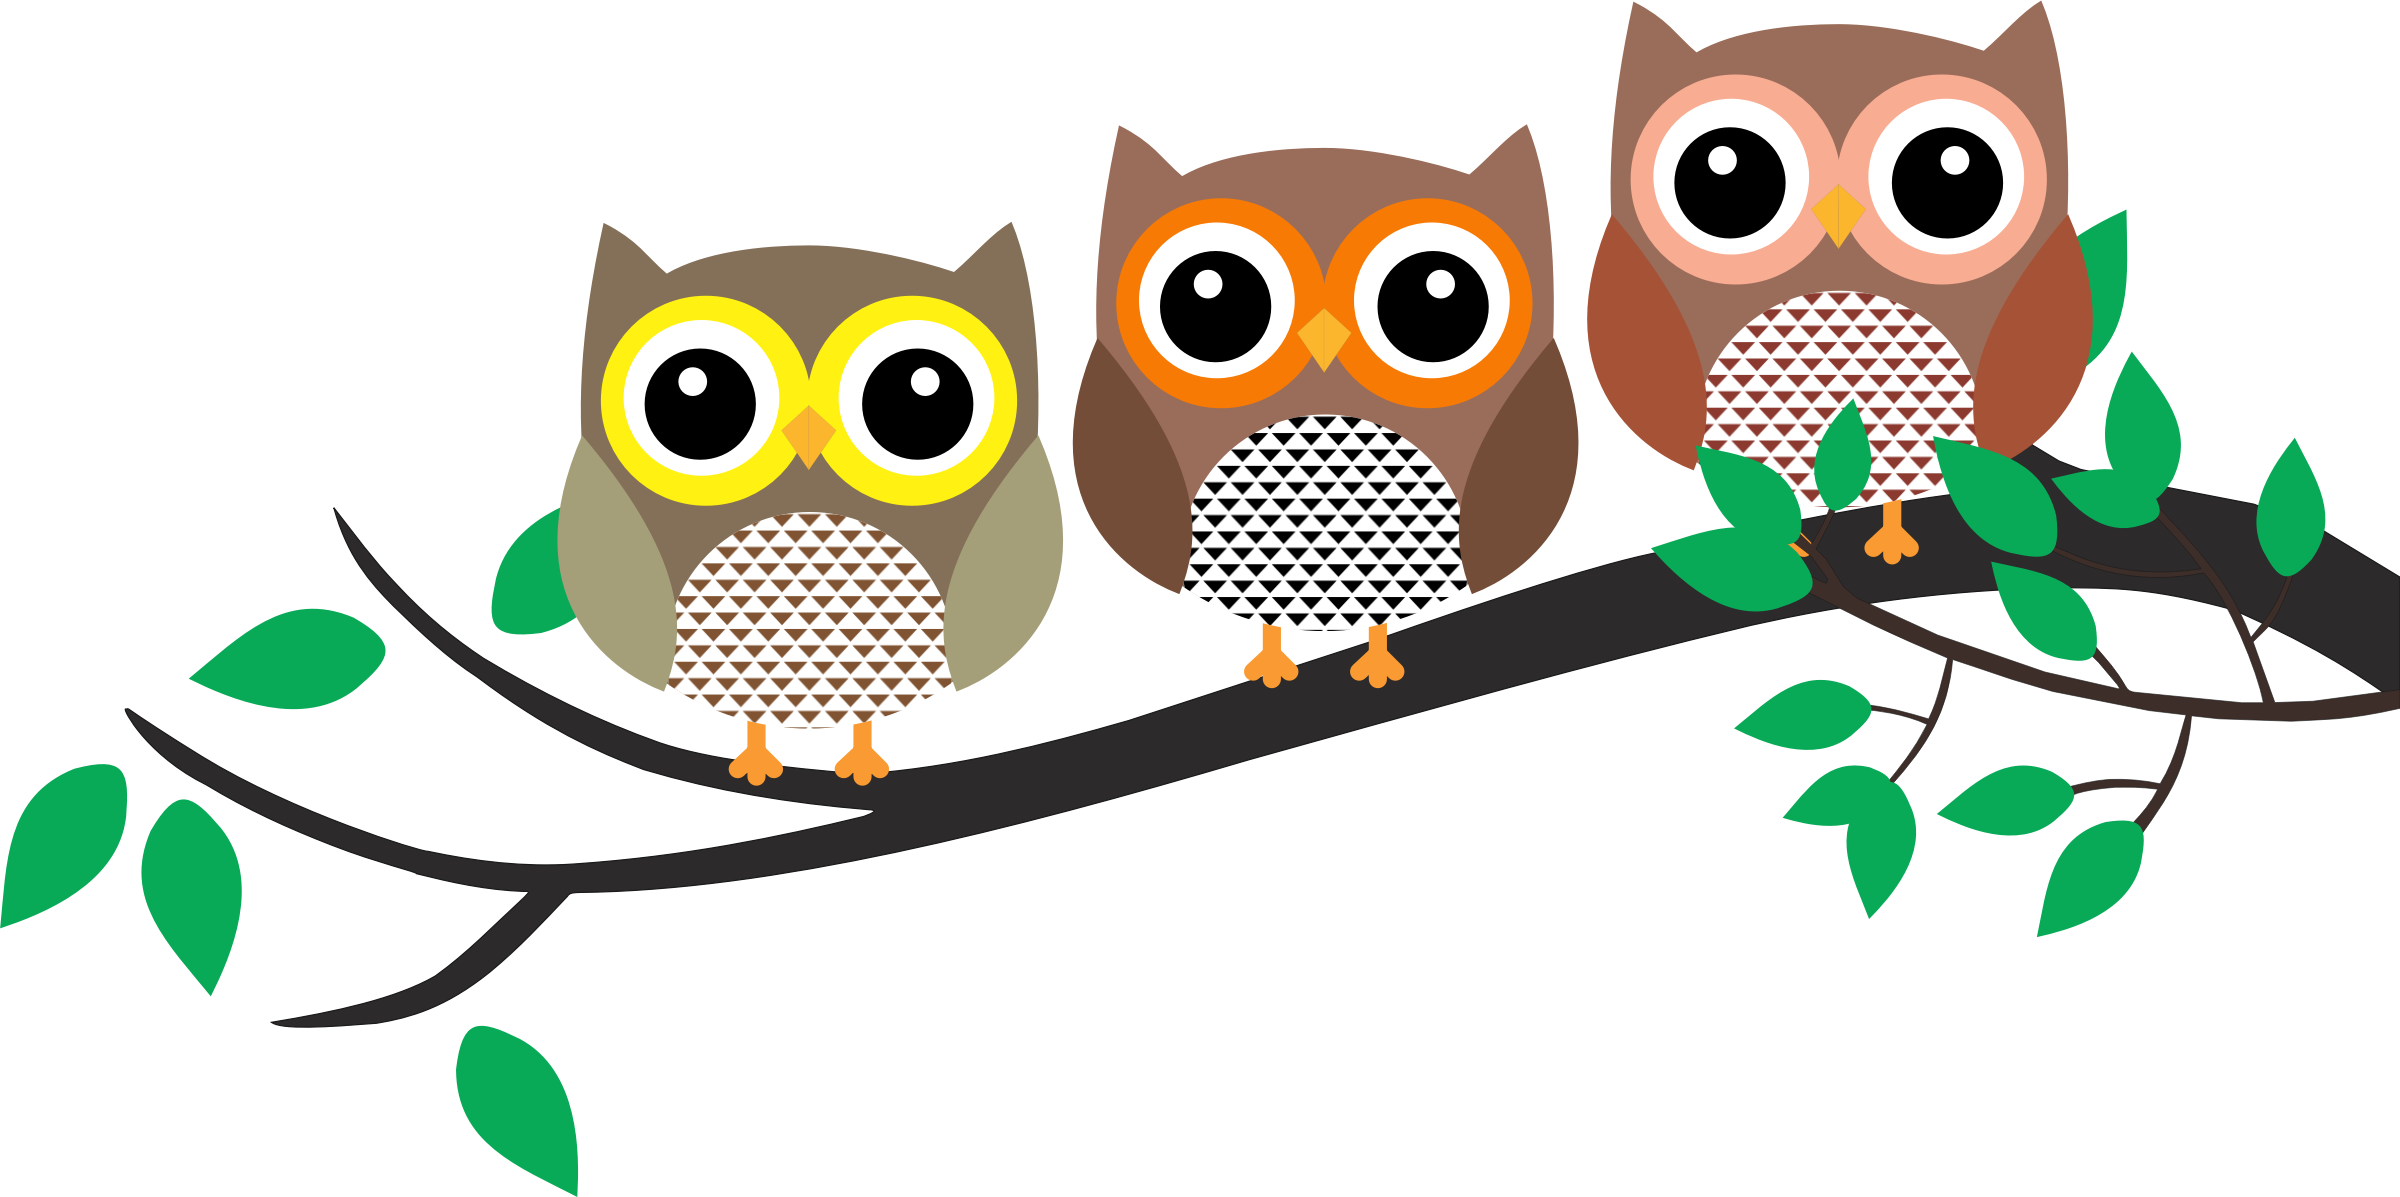 Home Decor Suppliers China Owls In A Tree Png Transparent Owls In A Tree Png Images